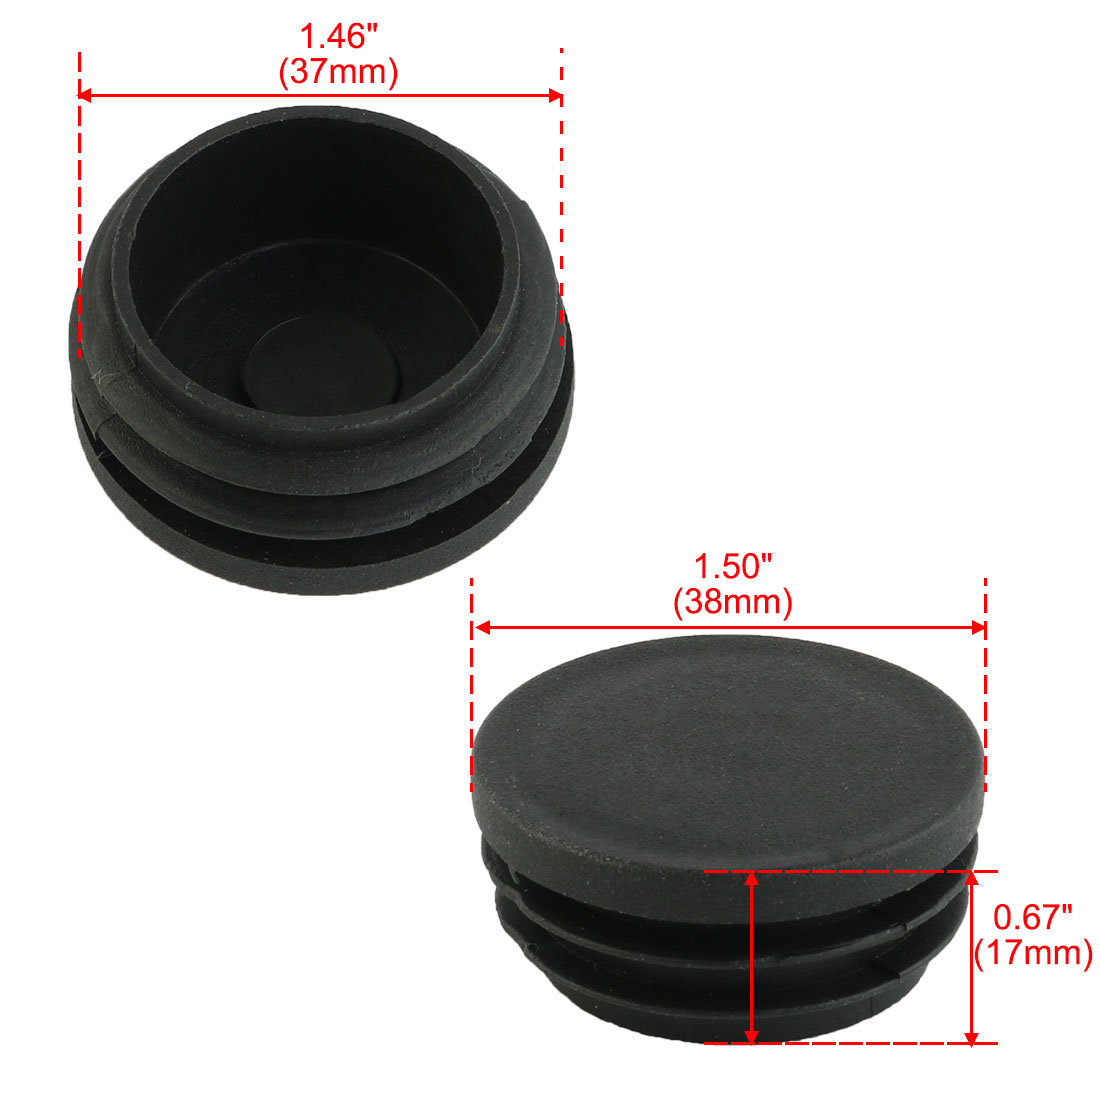 Chair Foot Caps Plastic Round Flat Type Table Chair Leg Caps Tube Insert Black 38mm Dia 20pcs